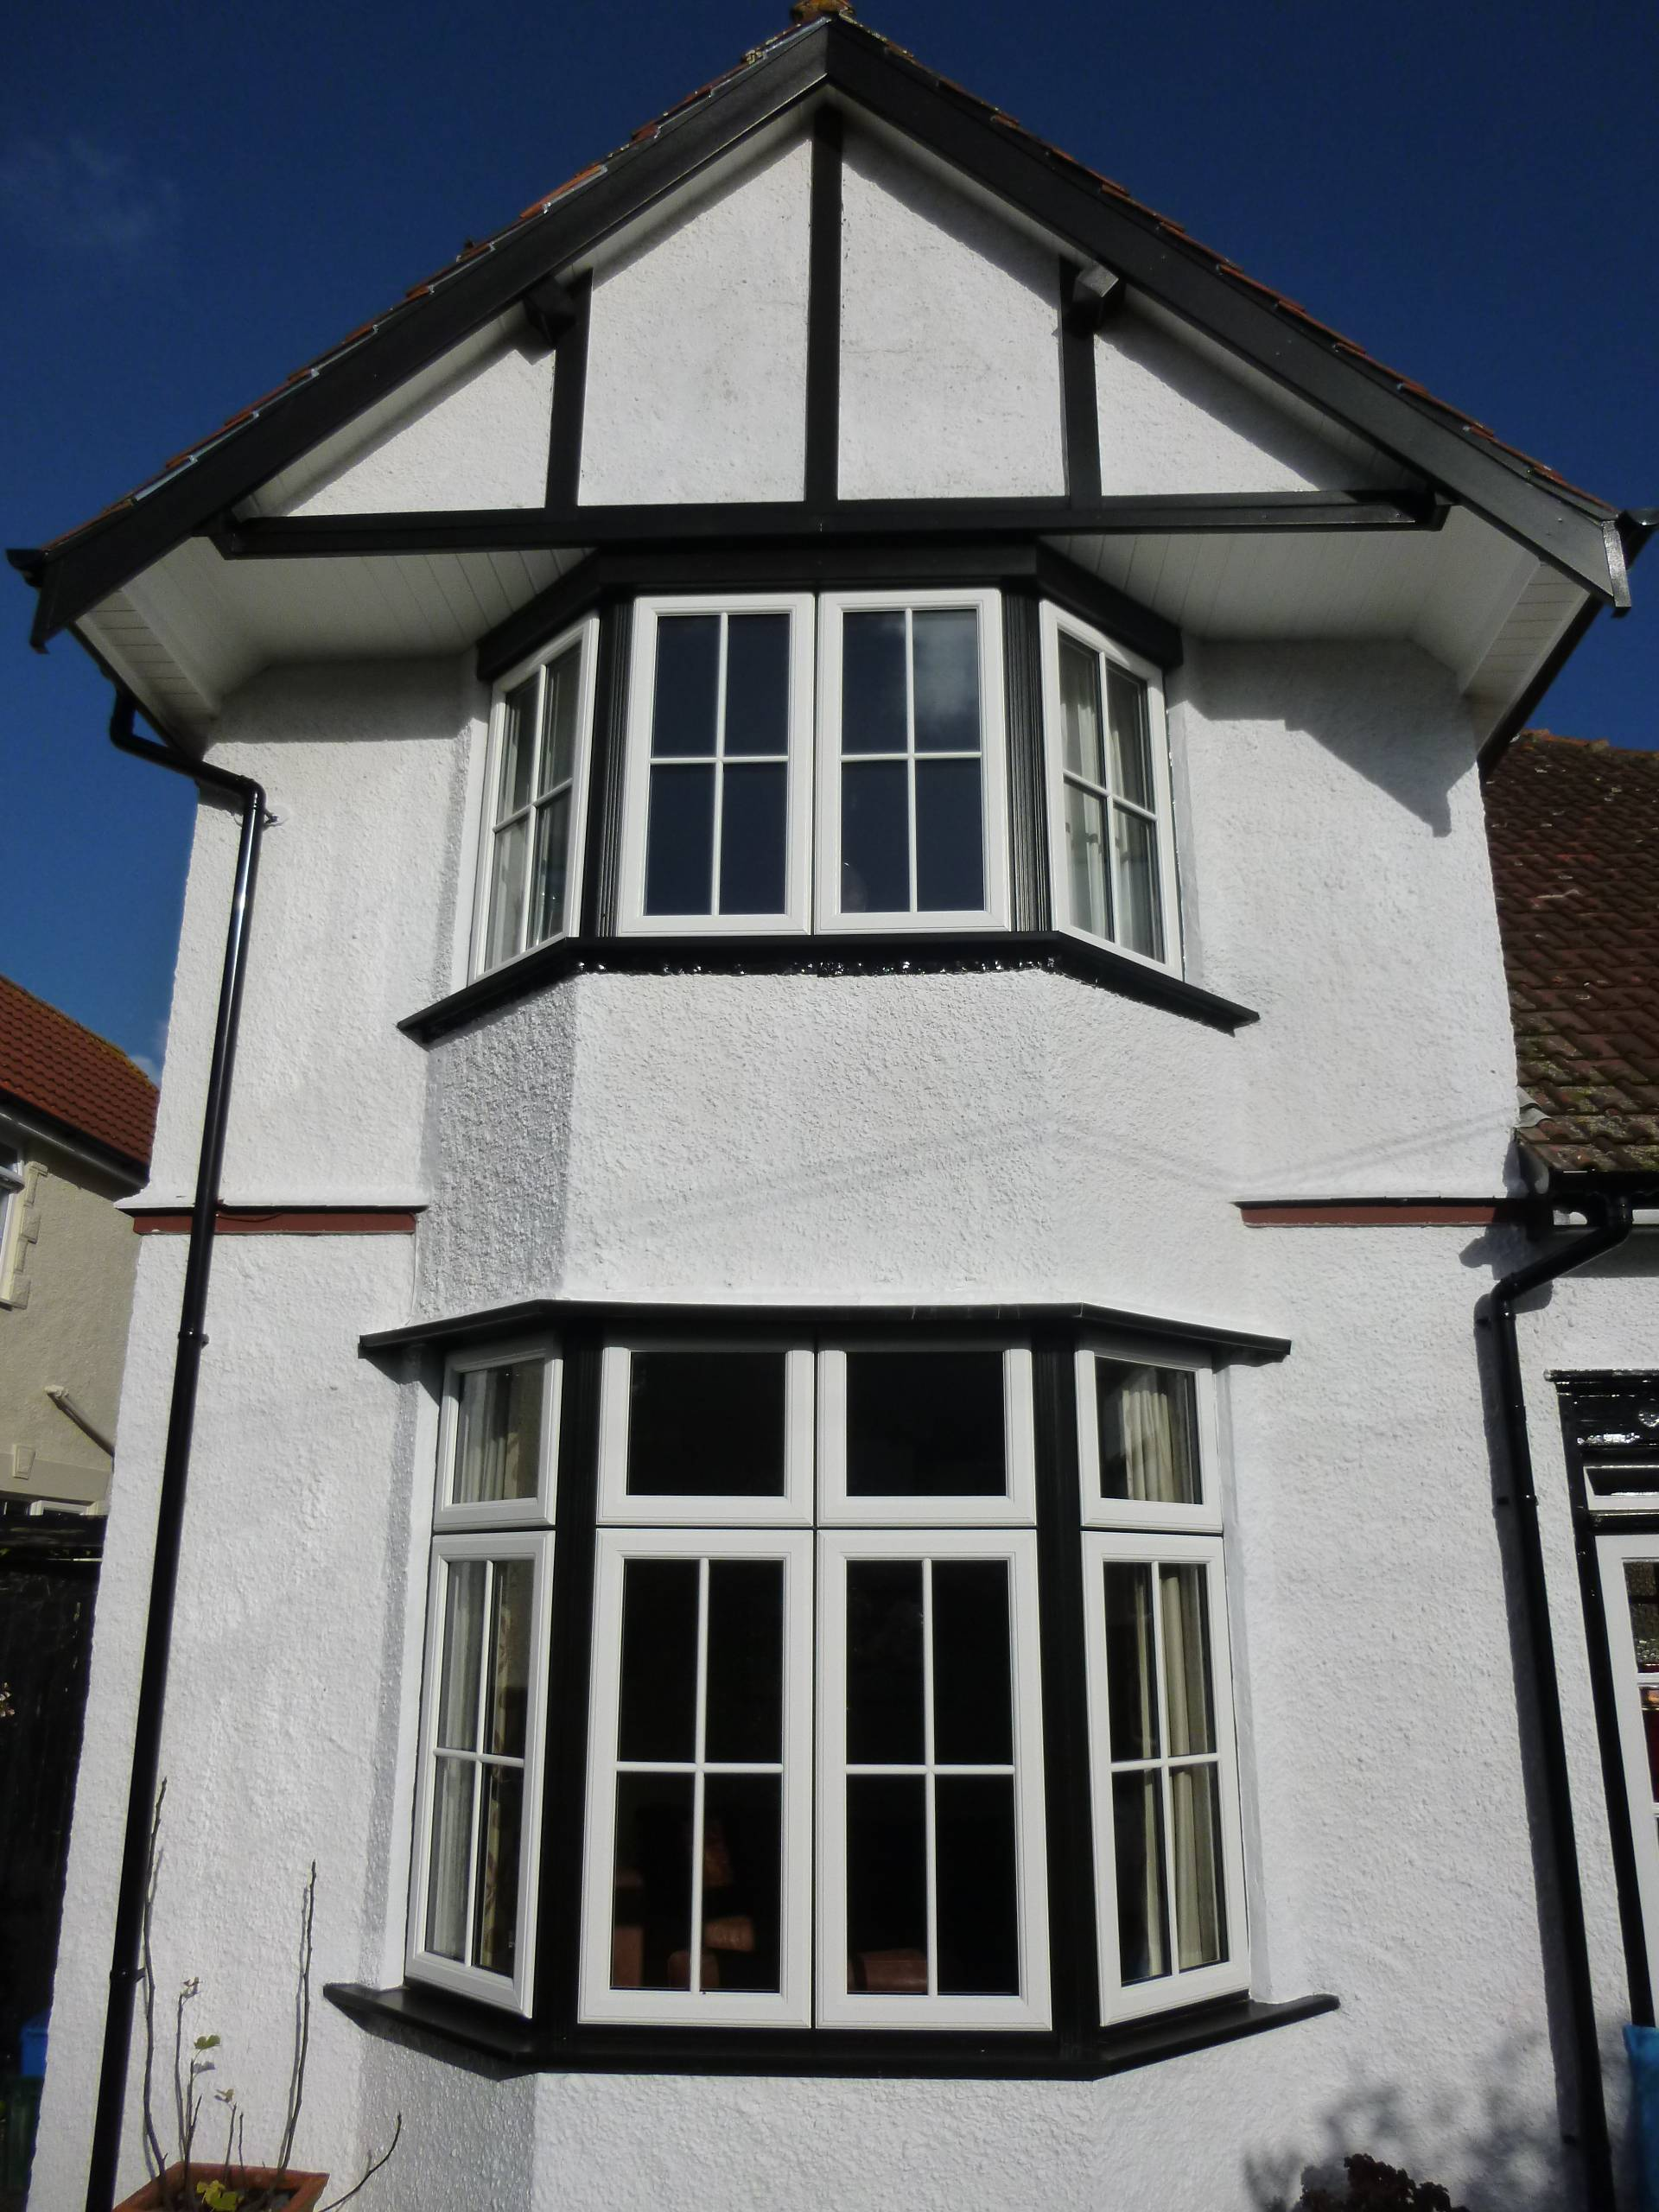 white and black traditional property with new bay window installations